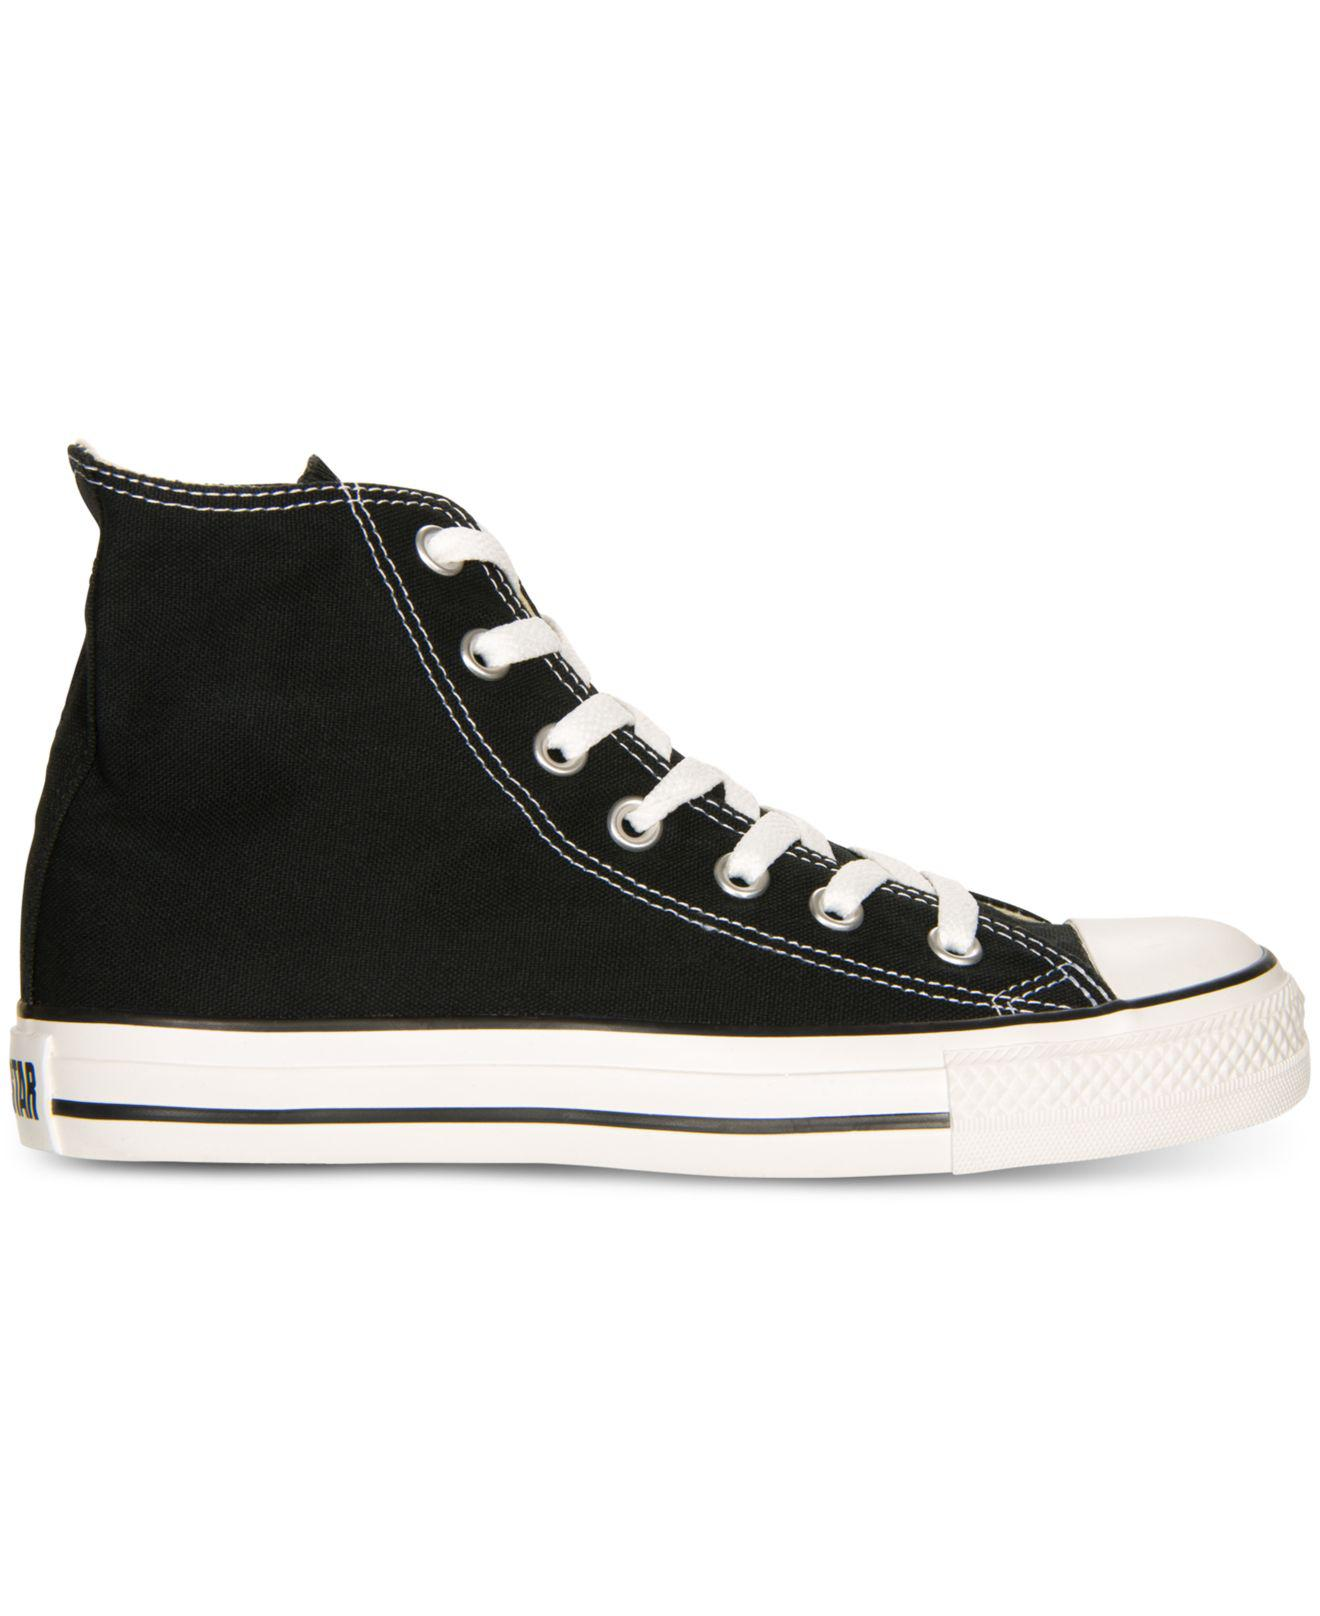 047c1f488d1 Lyst - Converse Women s Chuck Taylor All Star Hi Top Sneakers From Finish  Line in Black